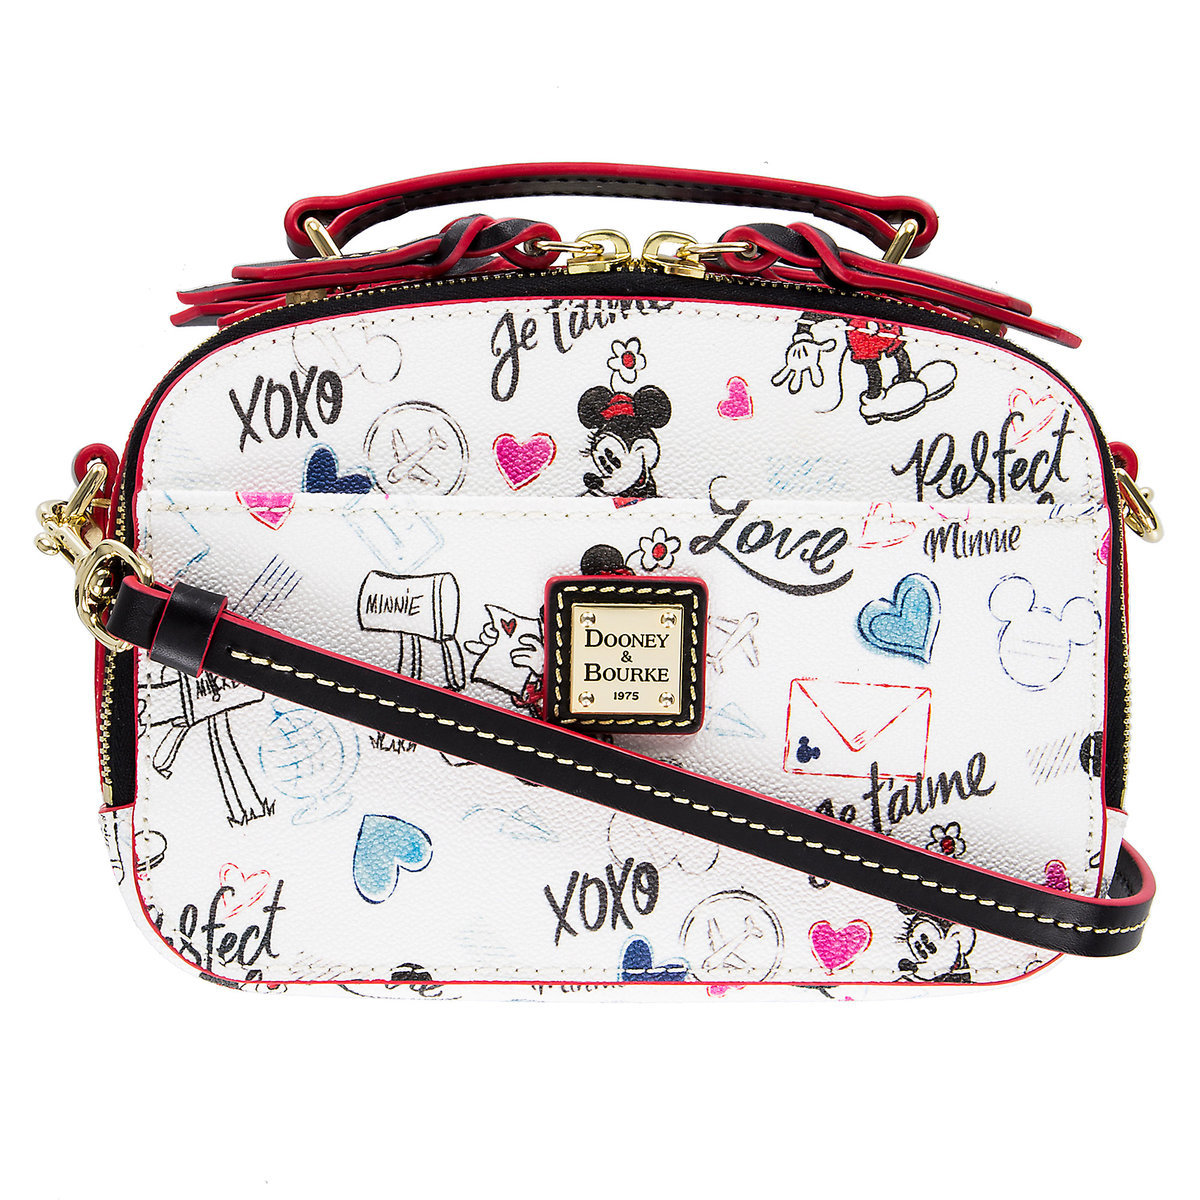 Wow Your Valentine with these Adorable Disney Handbags! #DisneyStyle 4